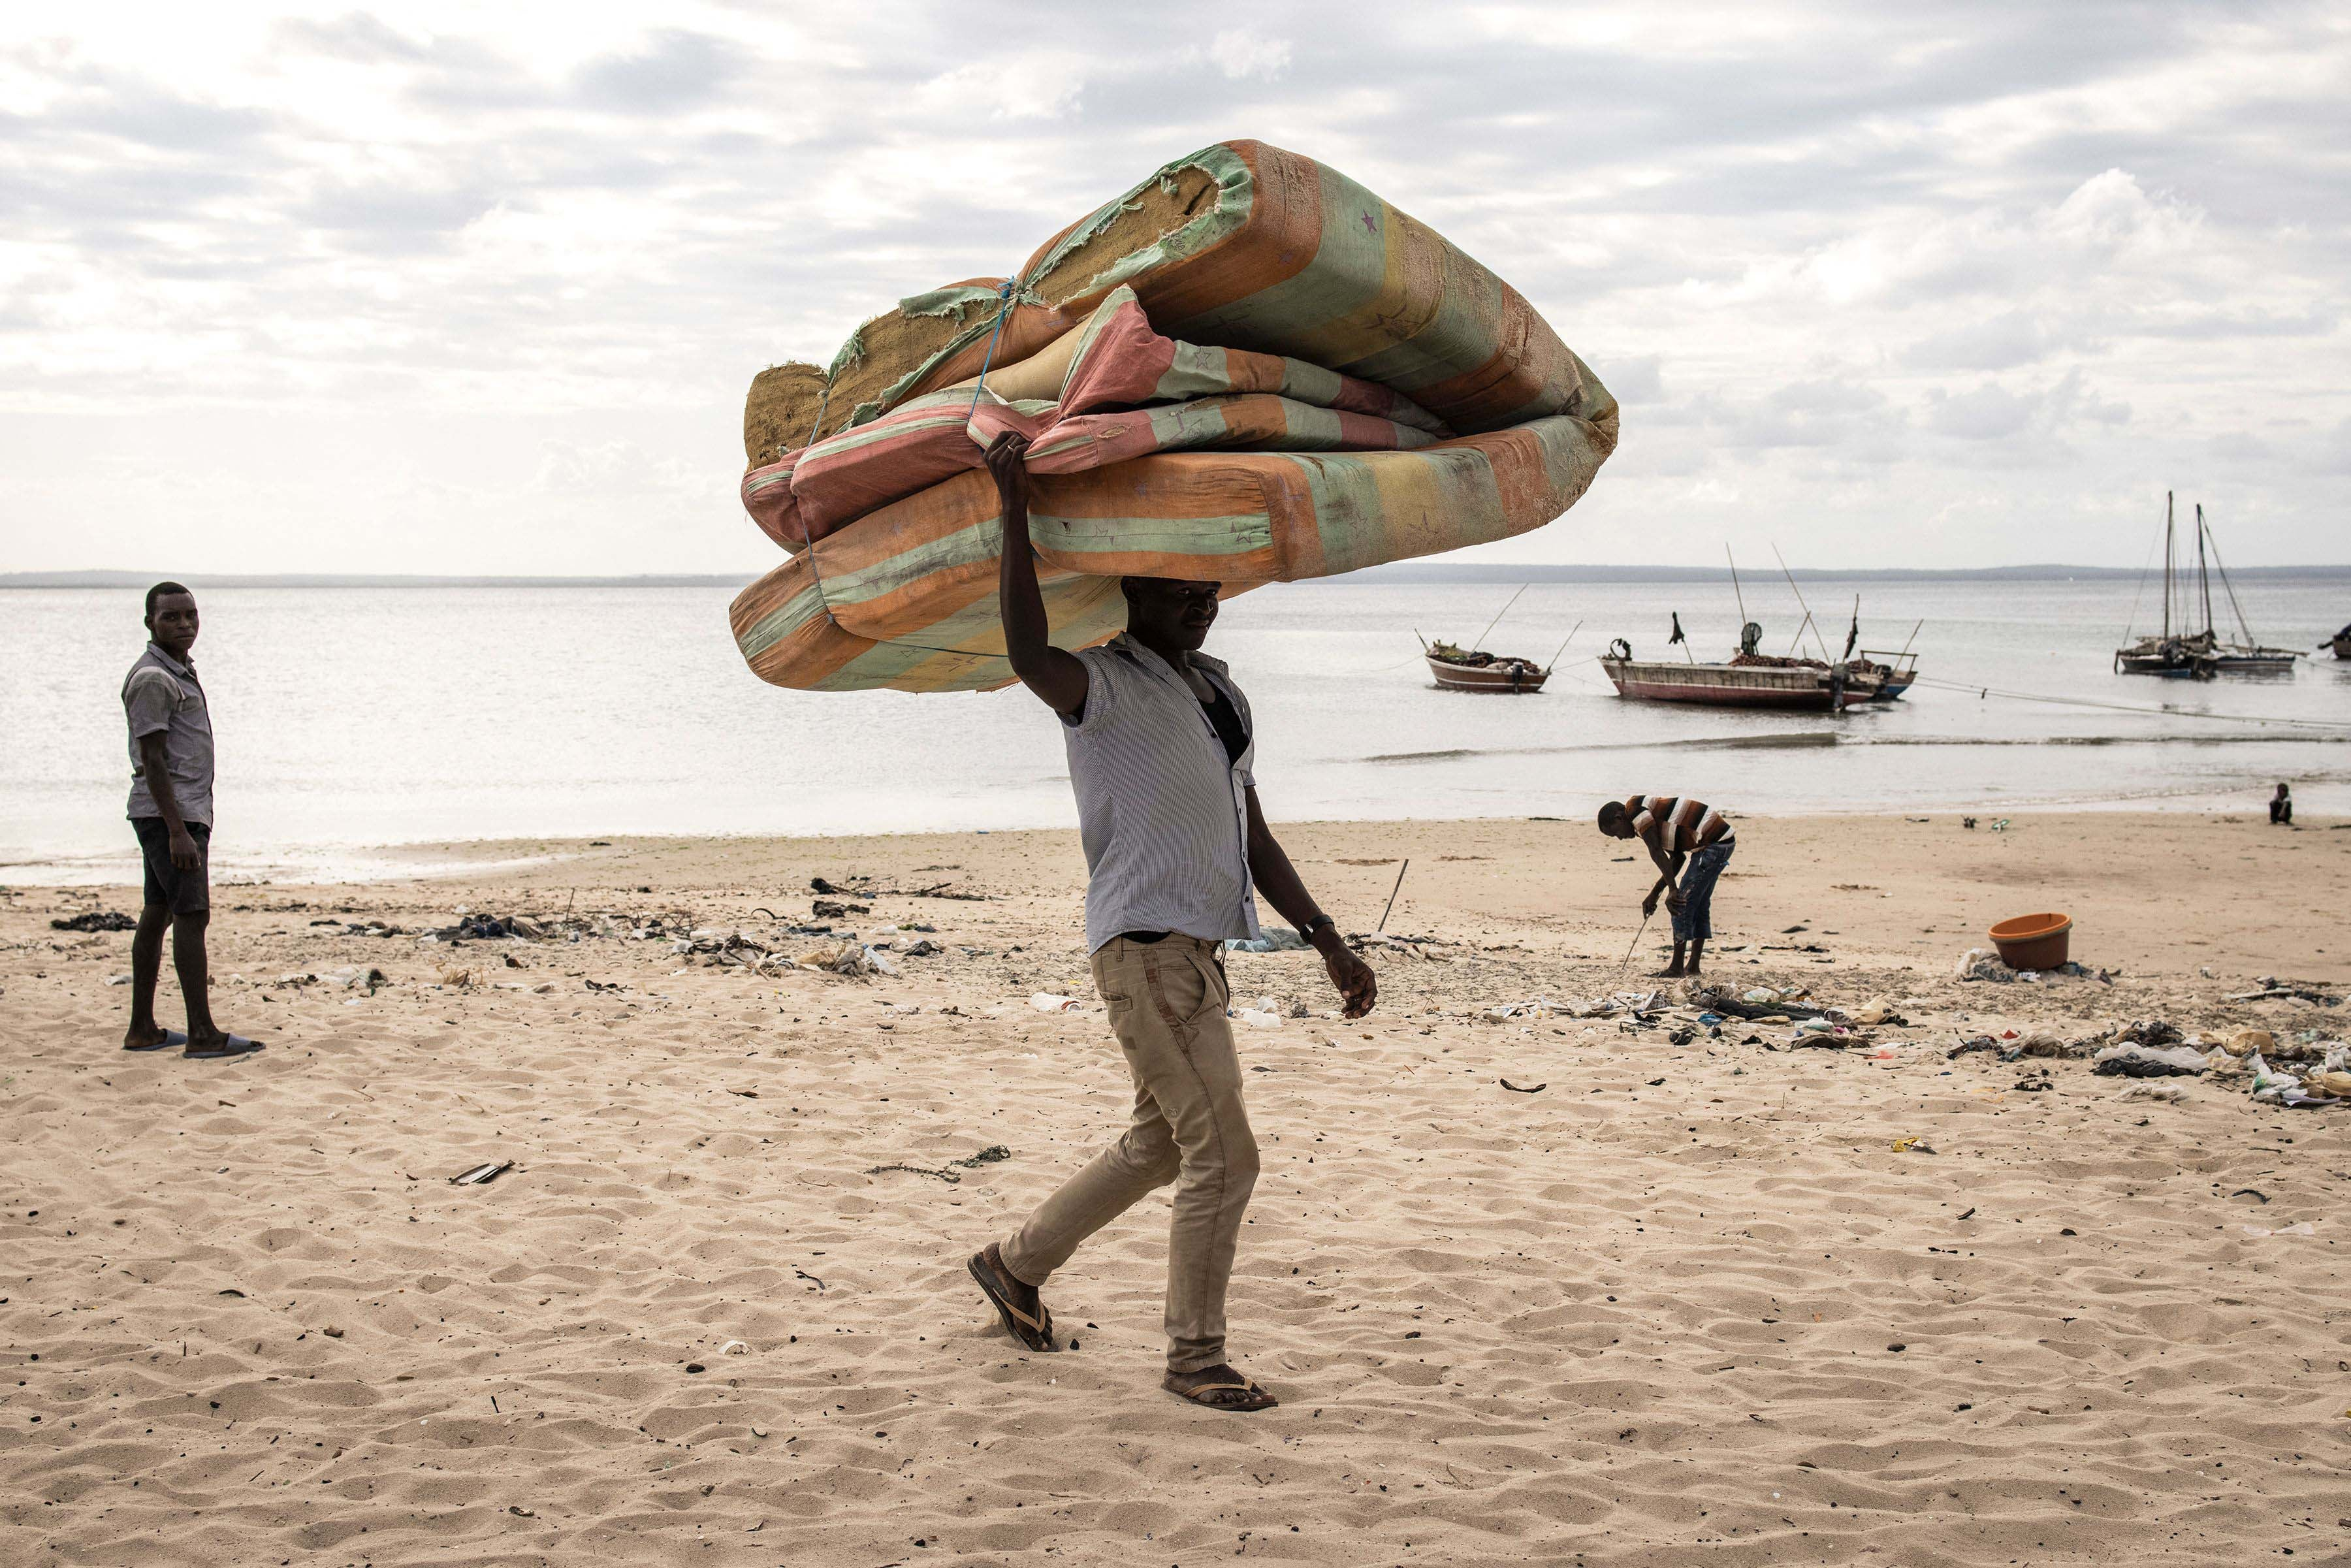 Mozambique: Civilians Prevented from Fleeing Fighting